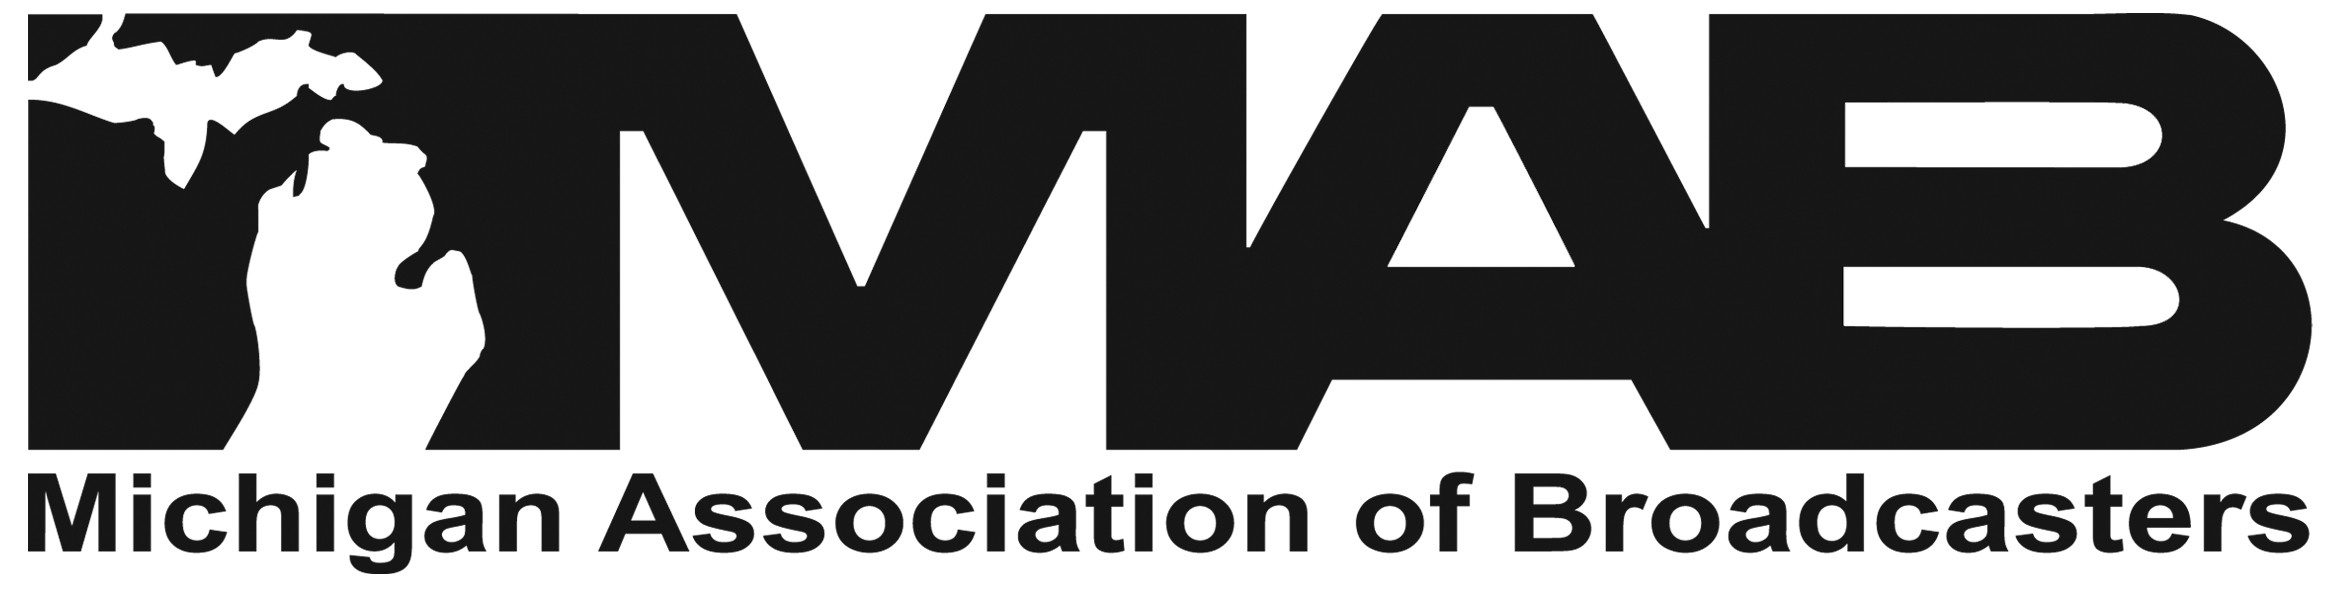 Michigan Association of Broadcasters